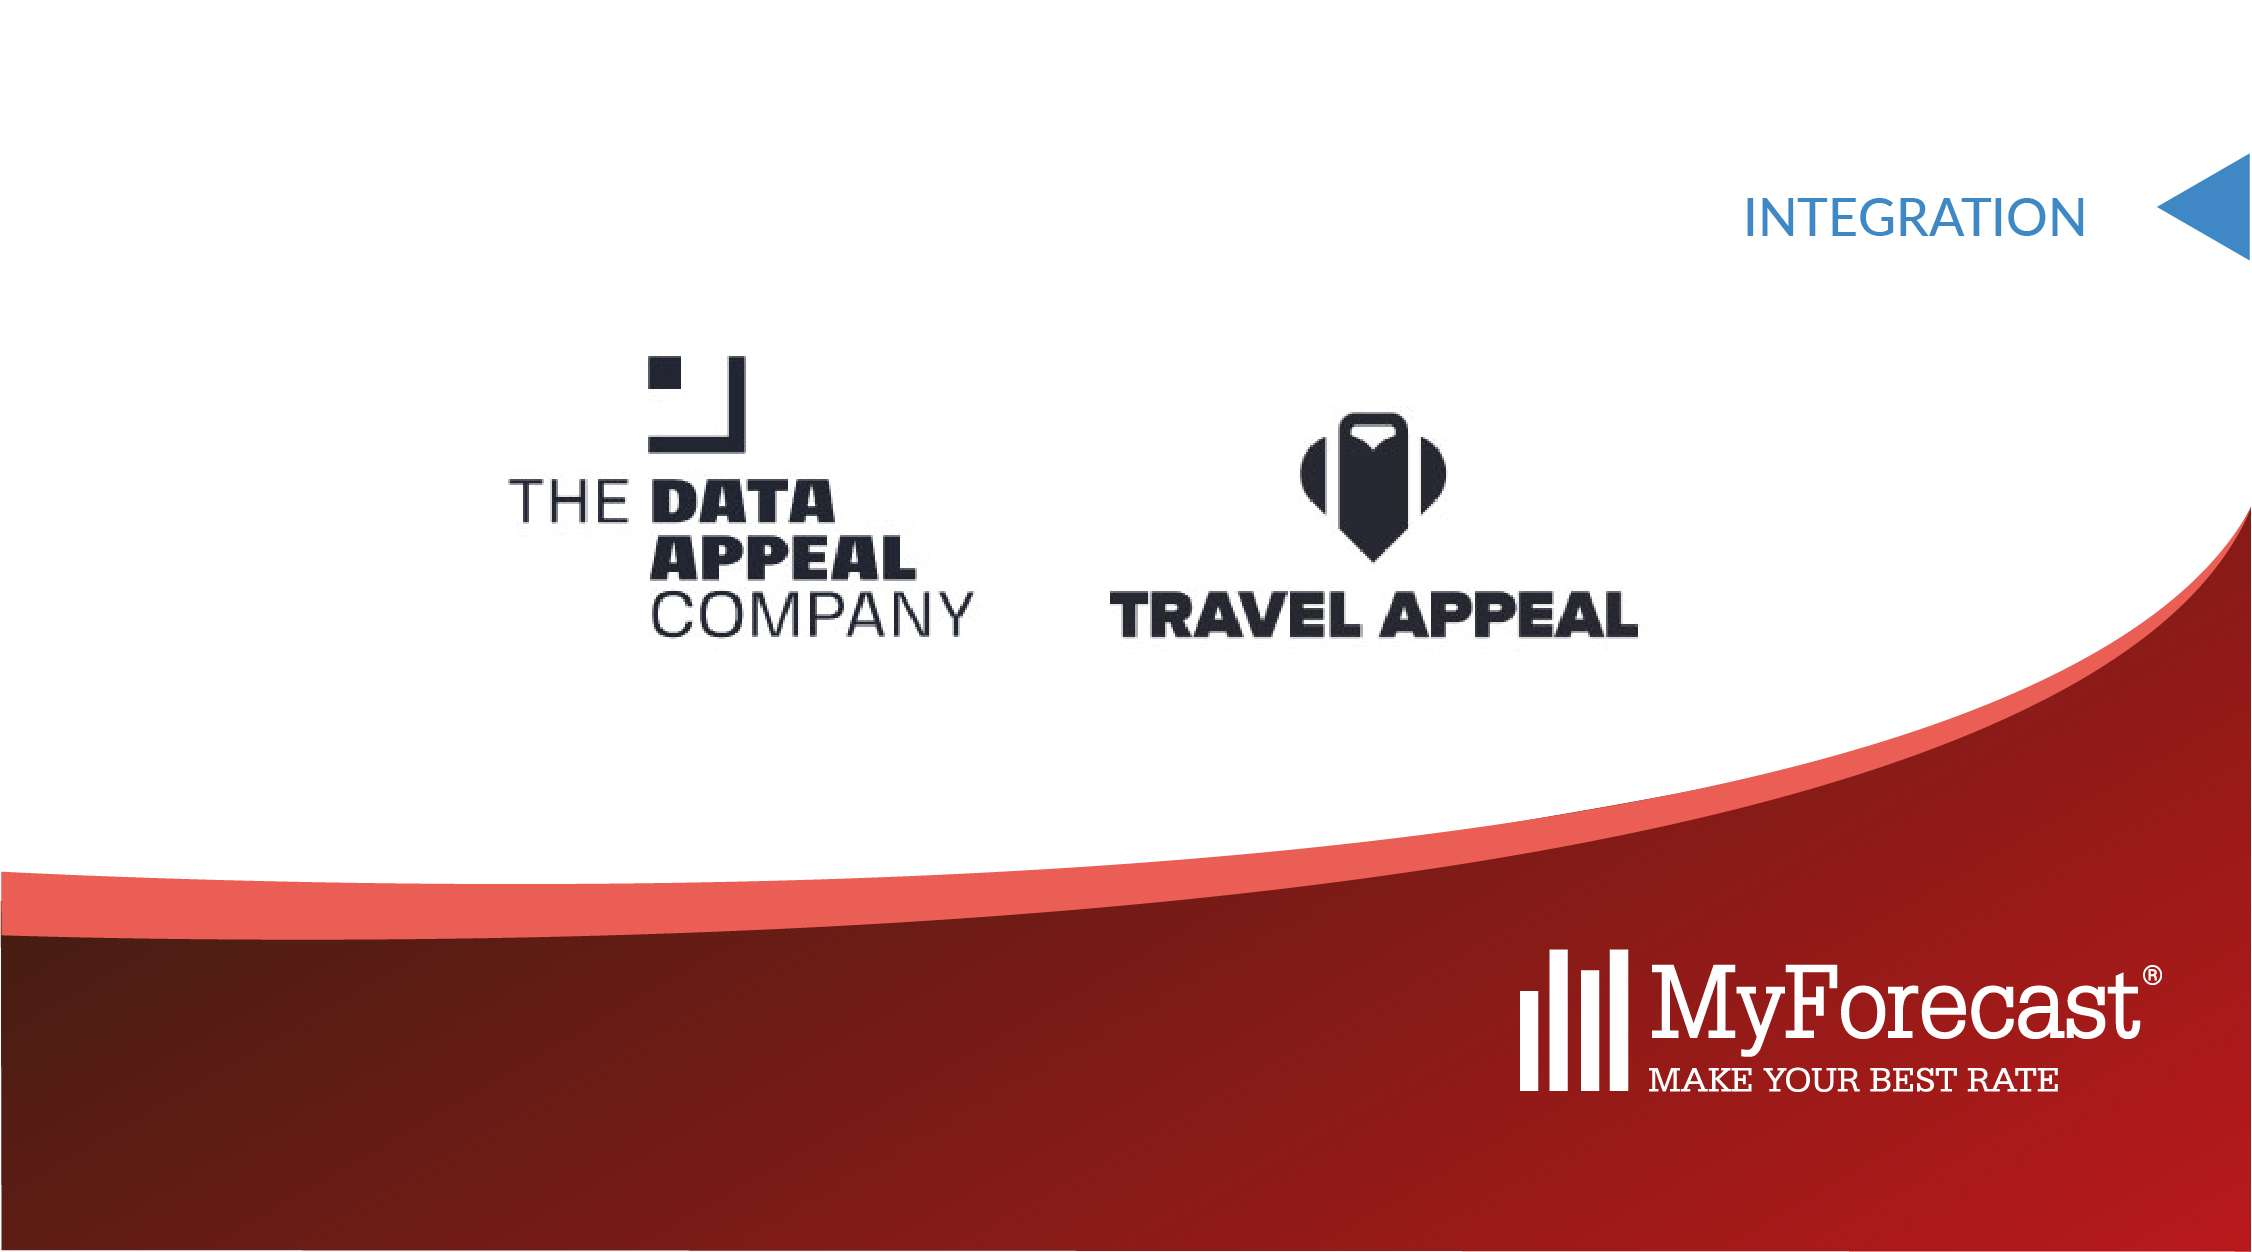 The Data Appeal company and MyForecast sign the partnership to improve the user experience